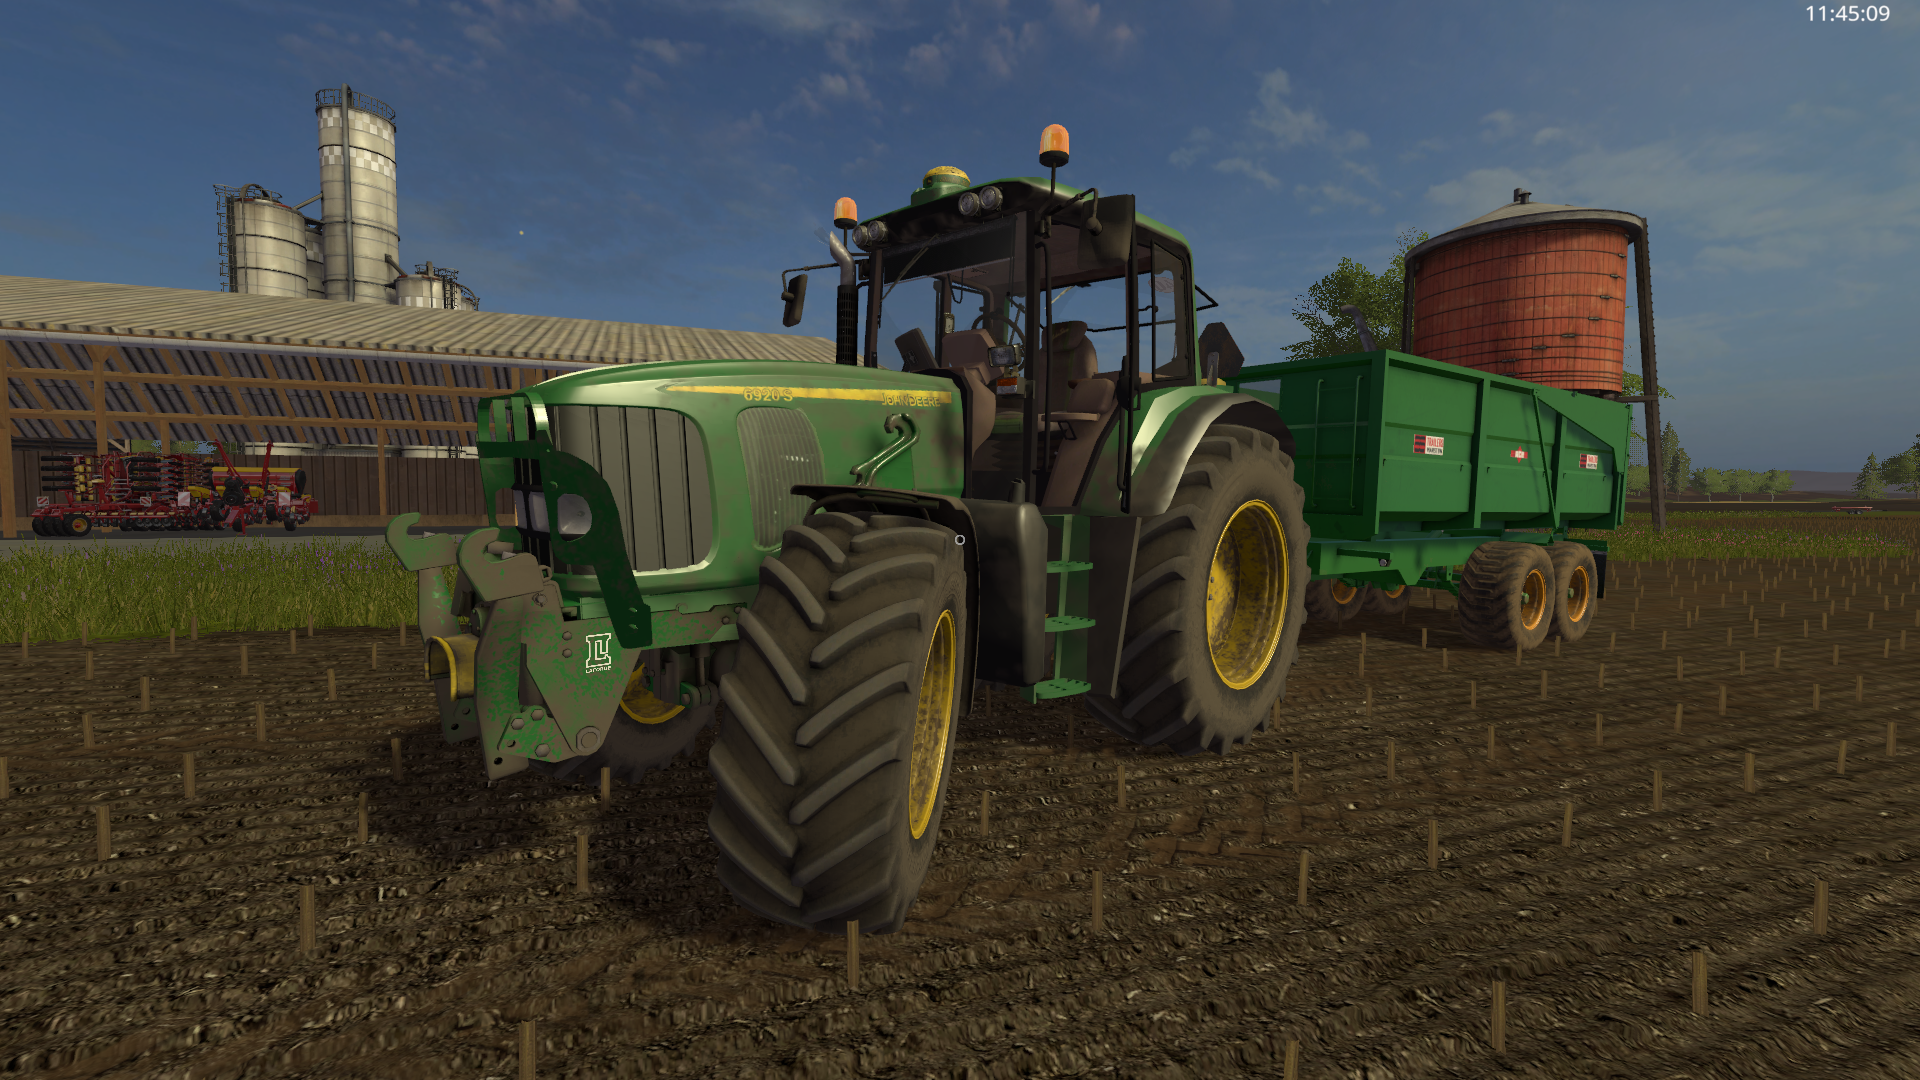 Farming simulator 2019 Gps Mod Download How To Use it